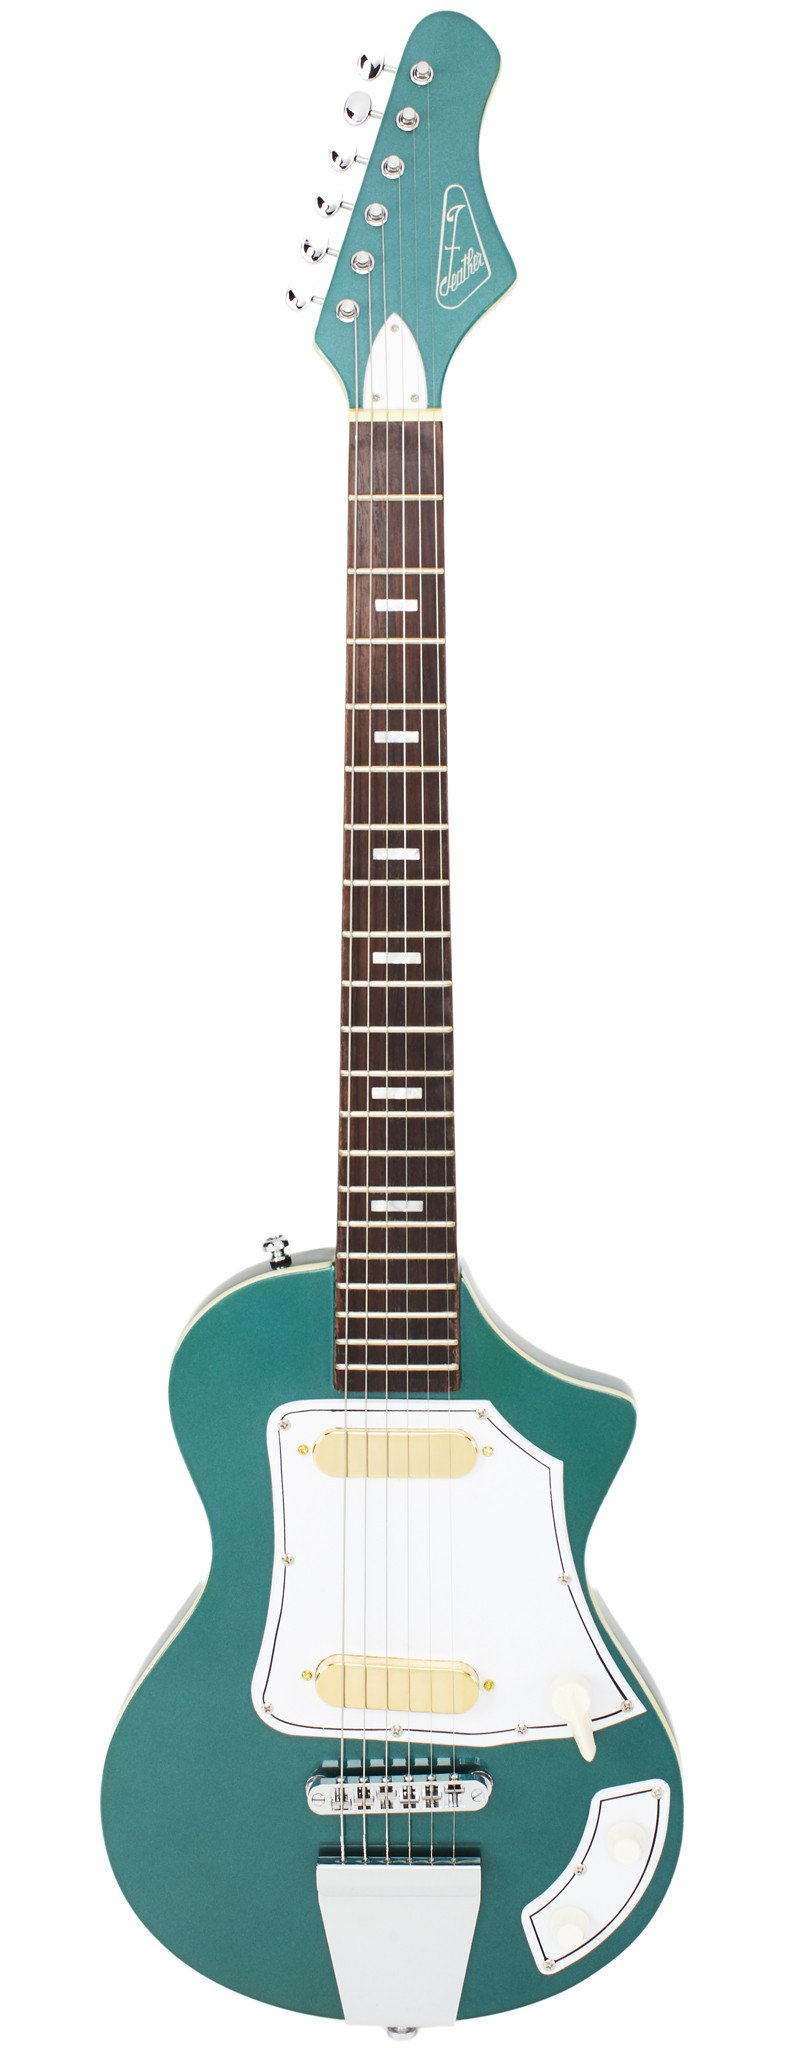 Eastwood Guitars LG50 Metallic Teal Full Front